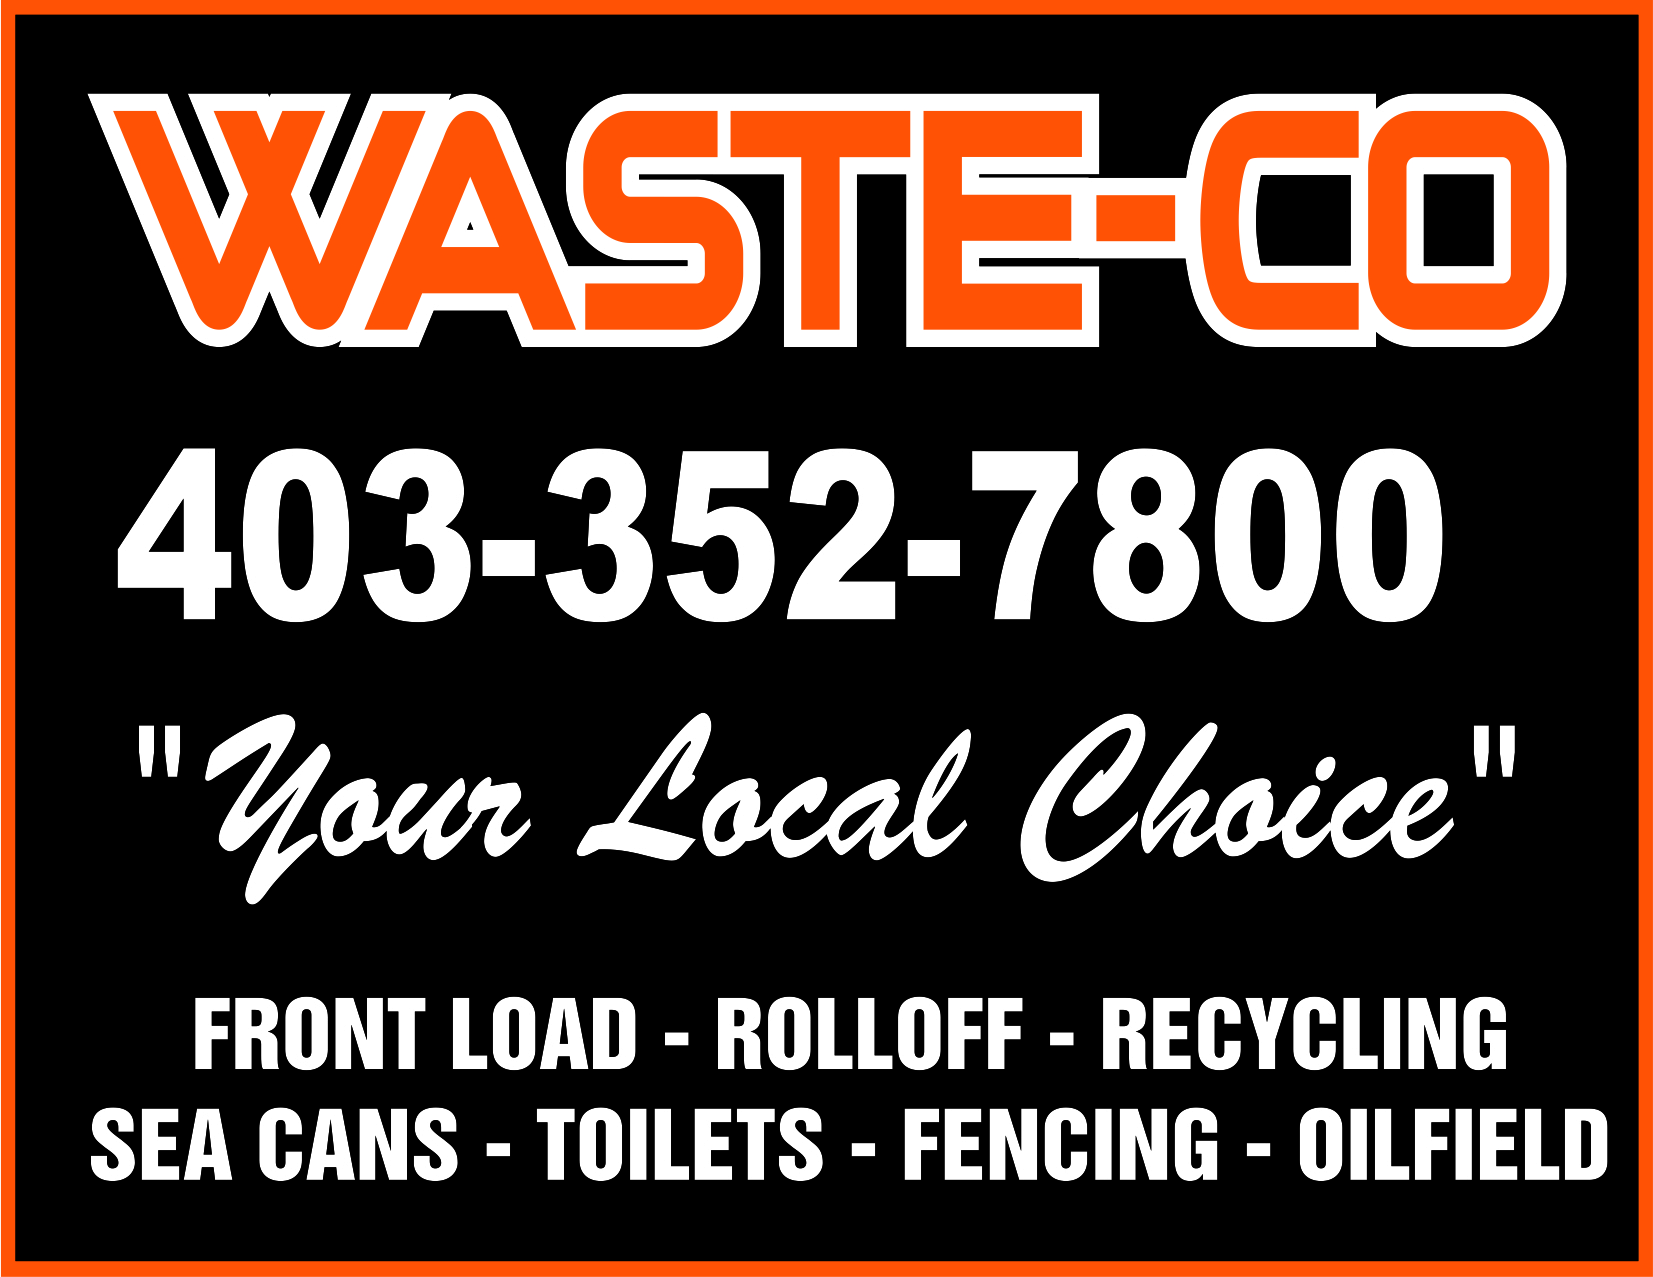 WASTE-CO DISPOSAL SYSTEMS INC logo